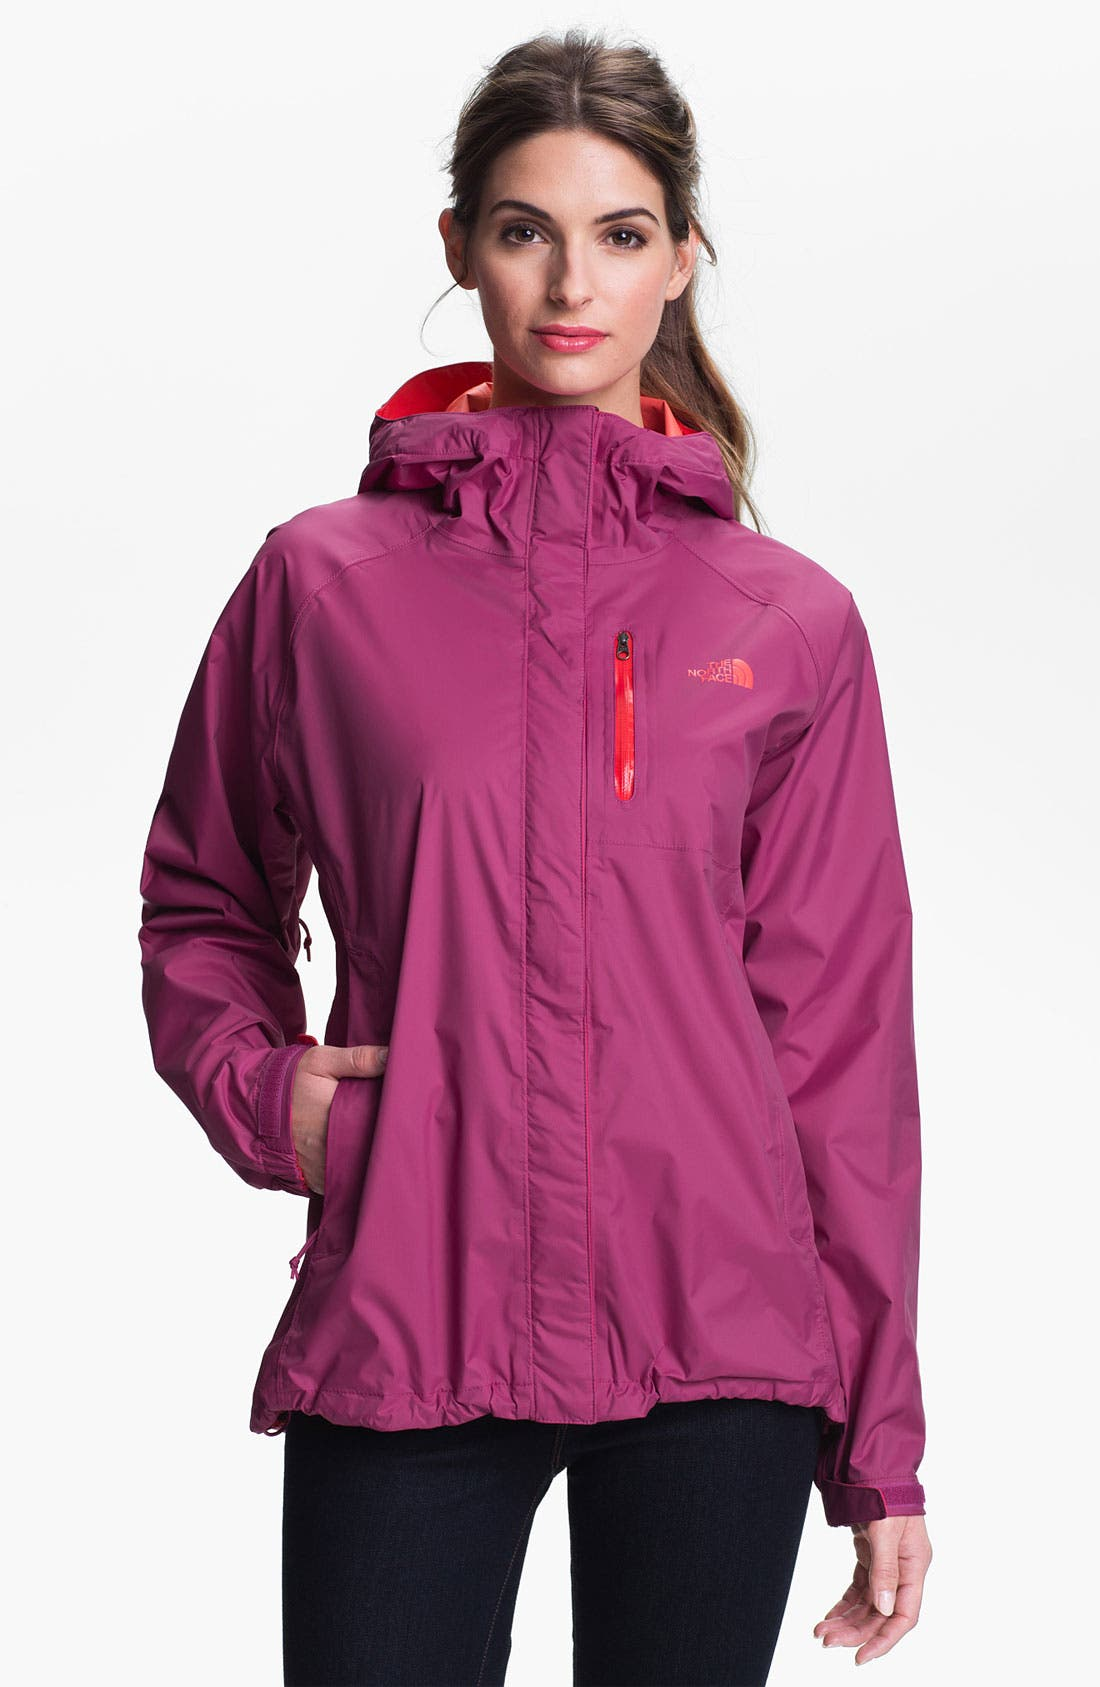 Main Image - The North Face 'Super Venture' Rain Jacket